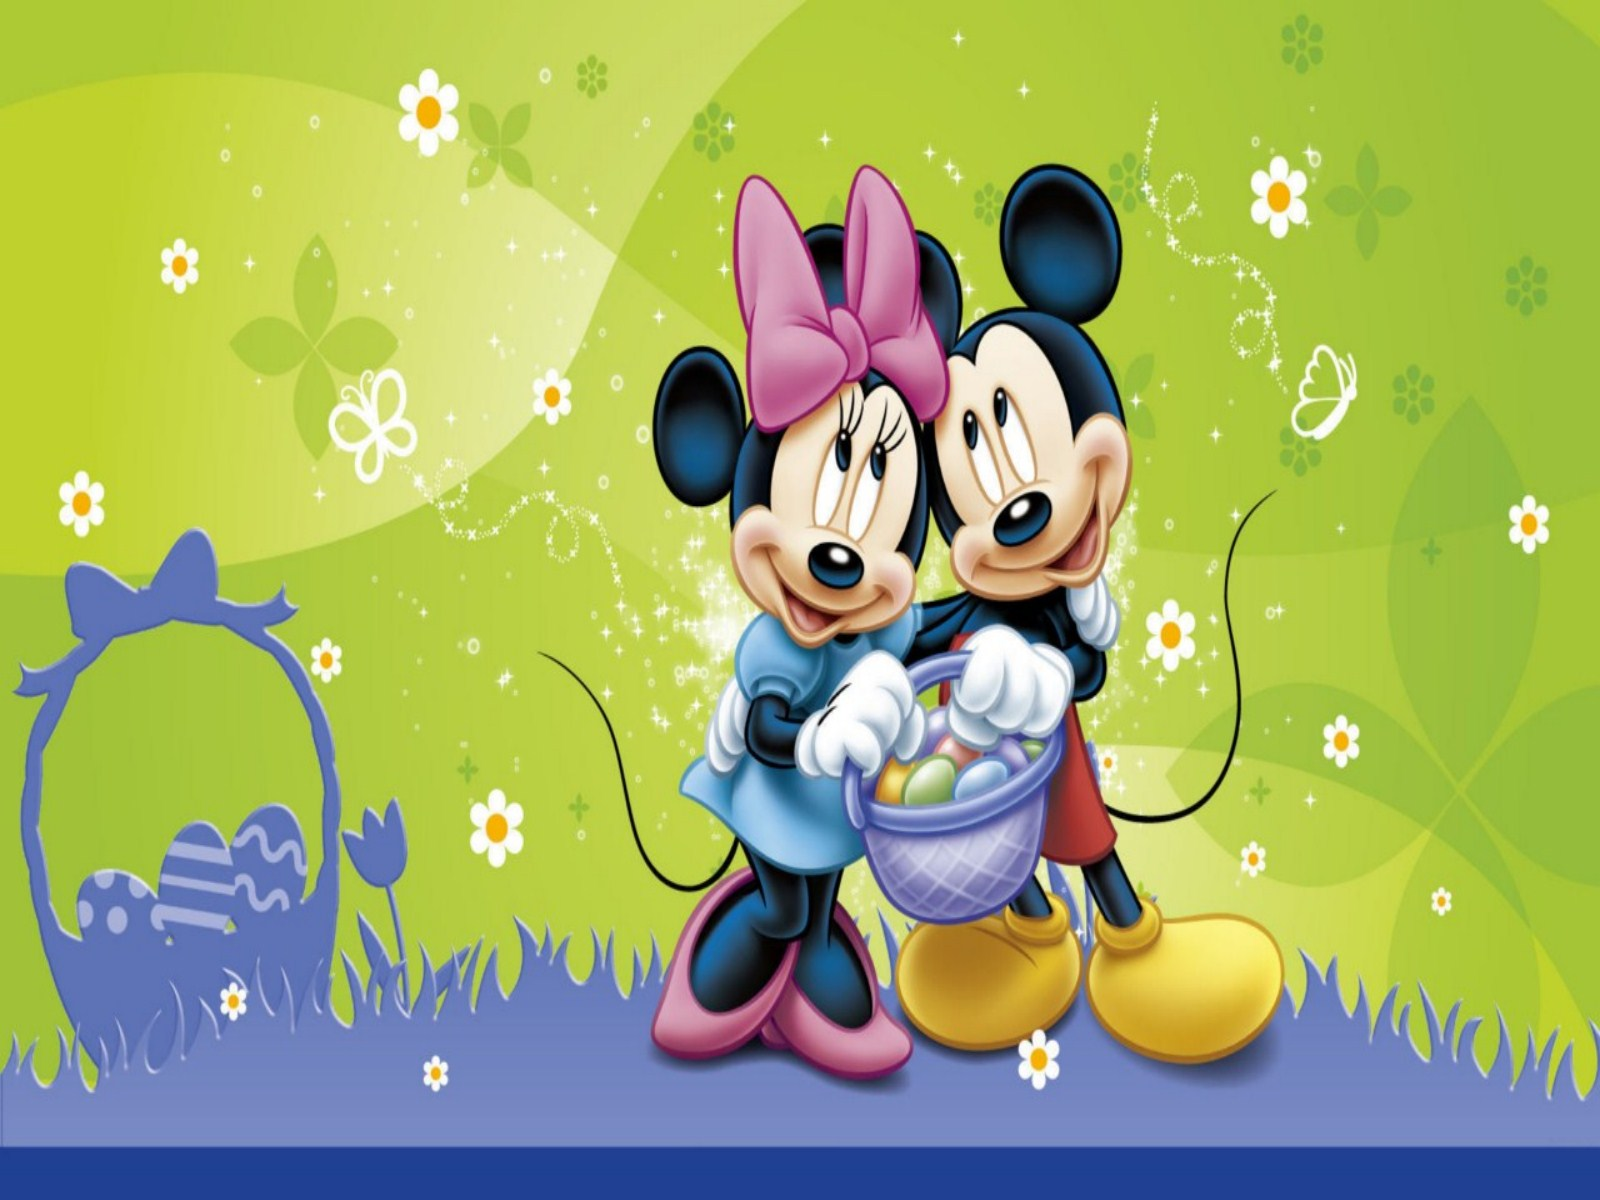 Mickey Mouse Easter Desktop Wallpaper - WallpaperSafari